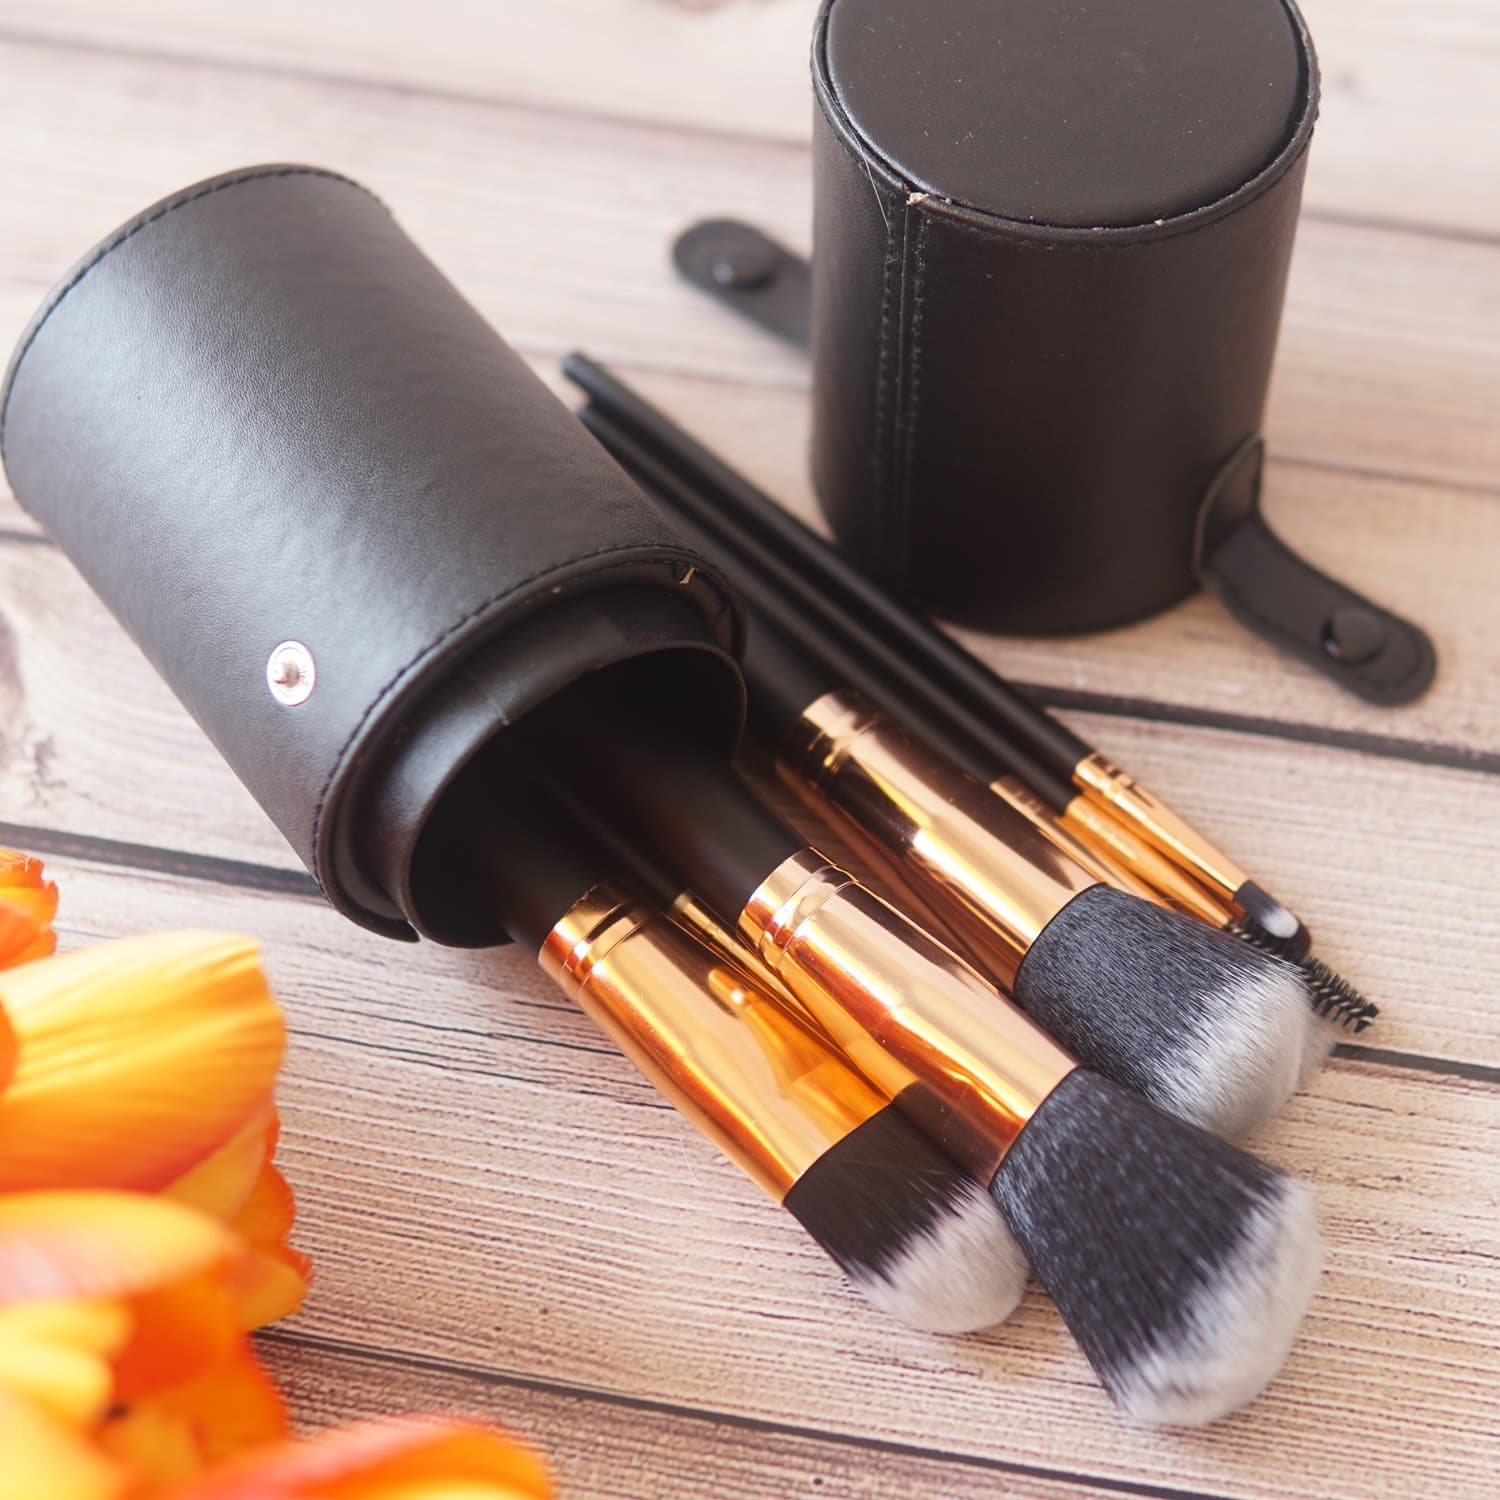 MAKE UP BRUSH KUAS TABUNG MAKE UP BRUSH SEKOLAH MAKE UP thumbnail